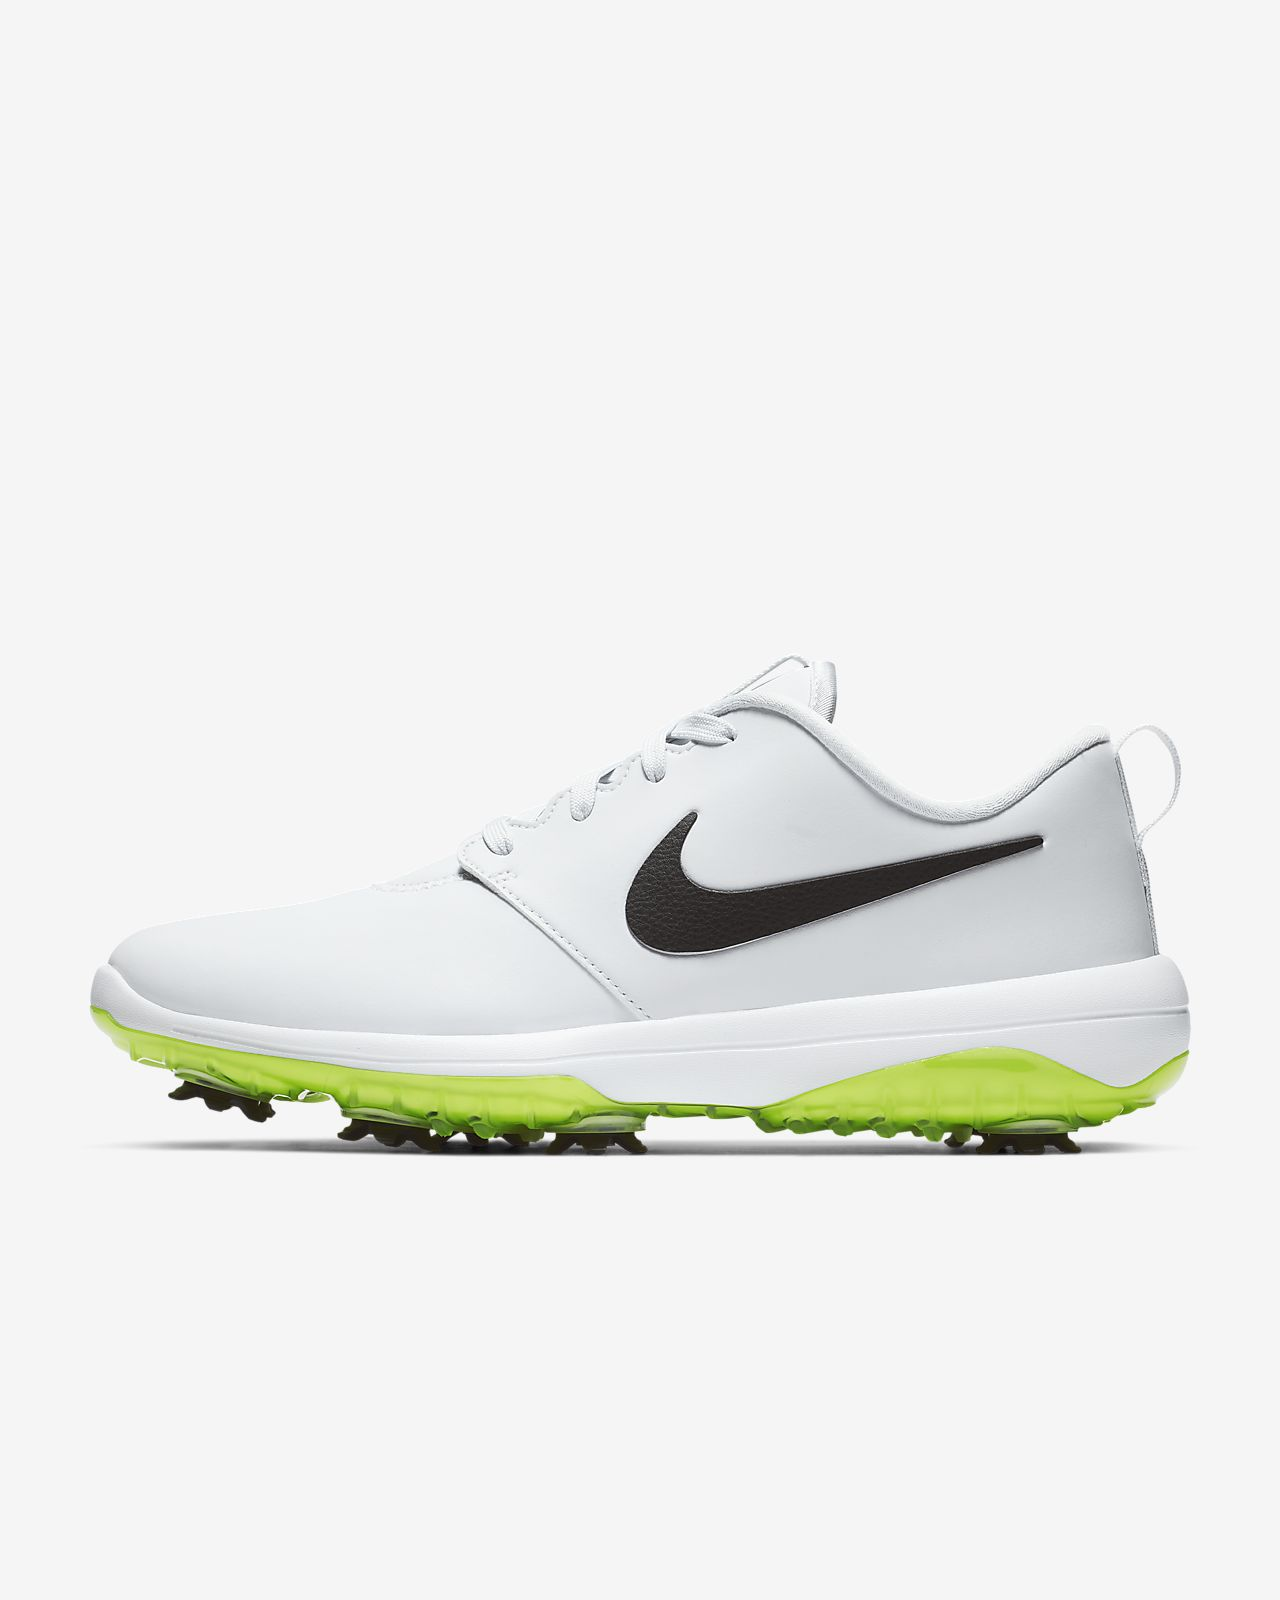 eb4a9f50a910 Nike Roshe G Tour Men s Golf Shoe. Nike.com